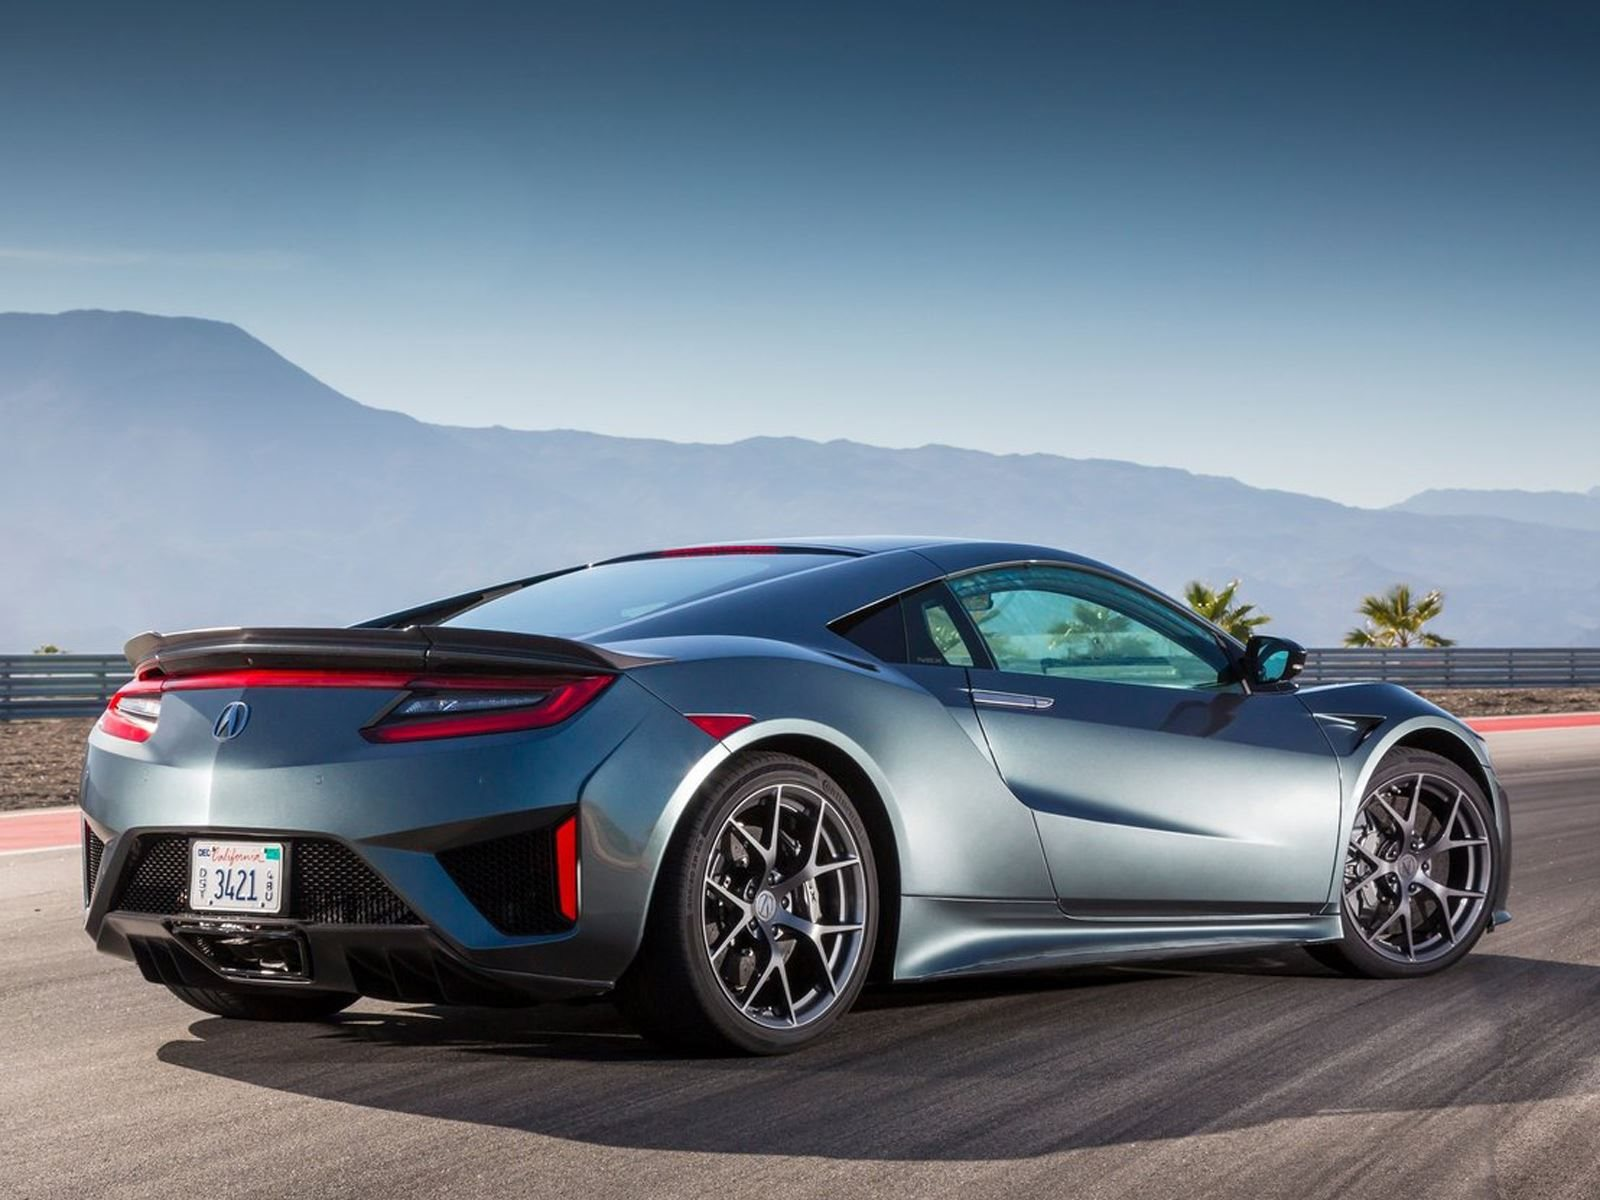 Will The Acura NSX Roadster Debut Later This Year? - CarBuzz